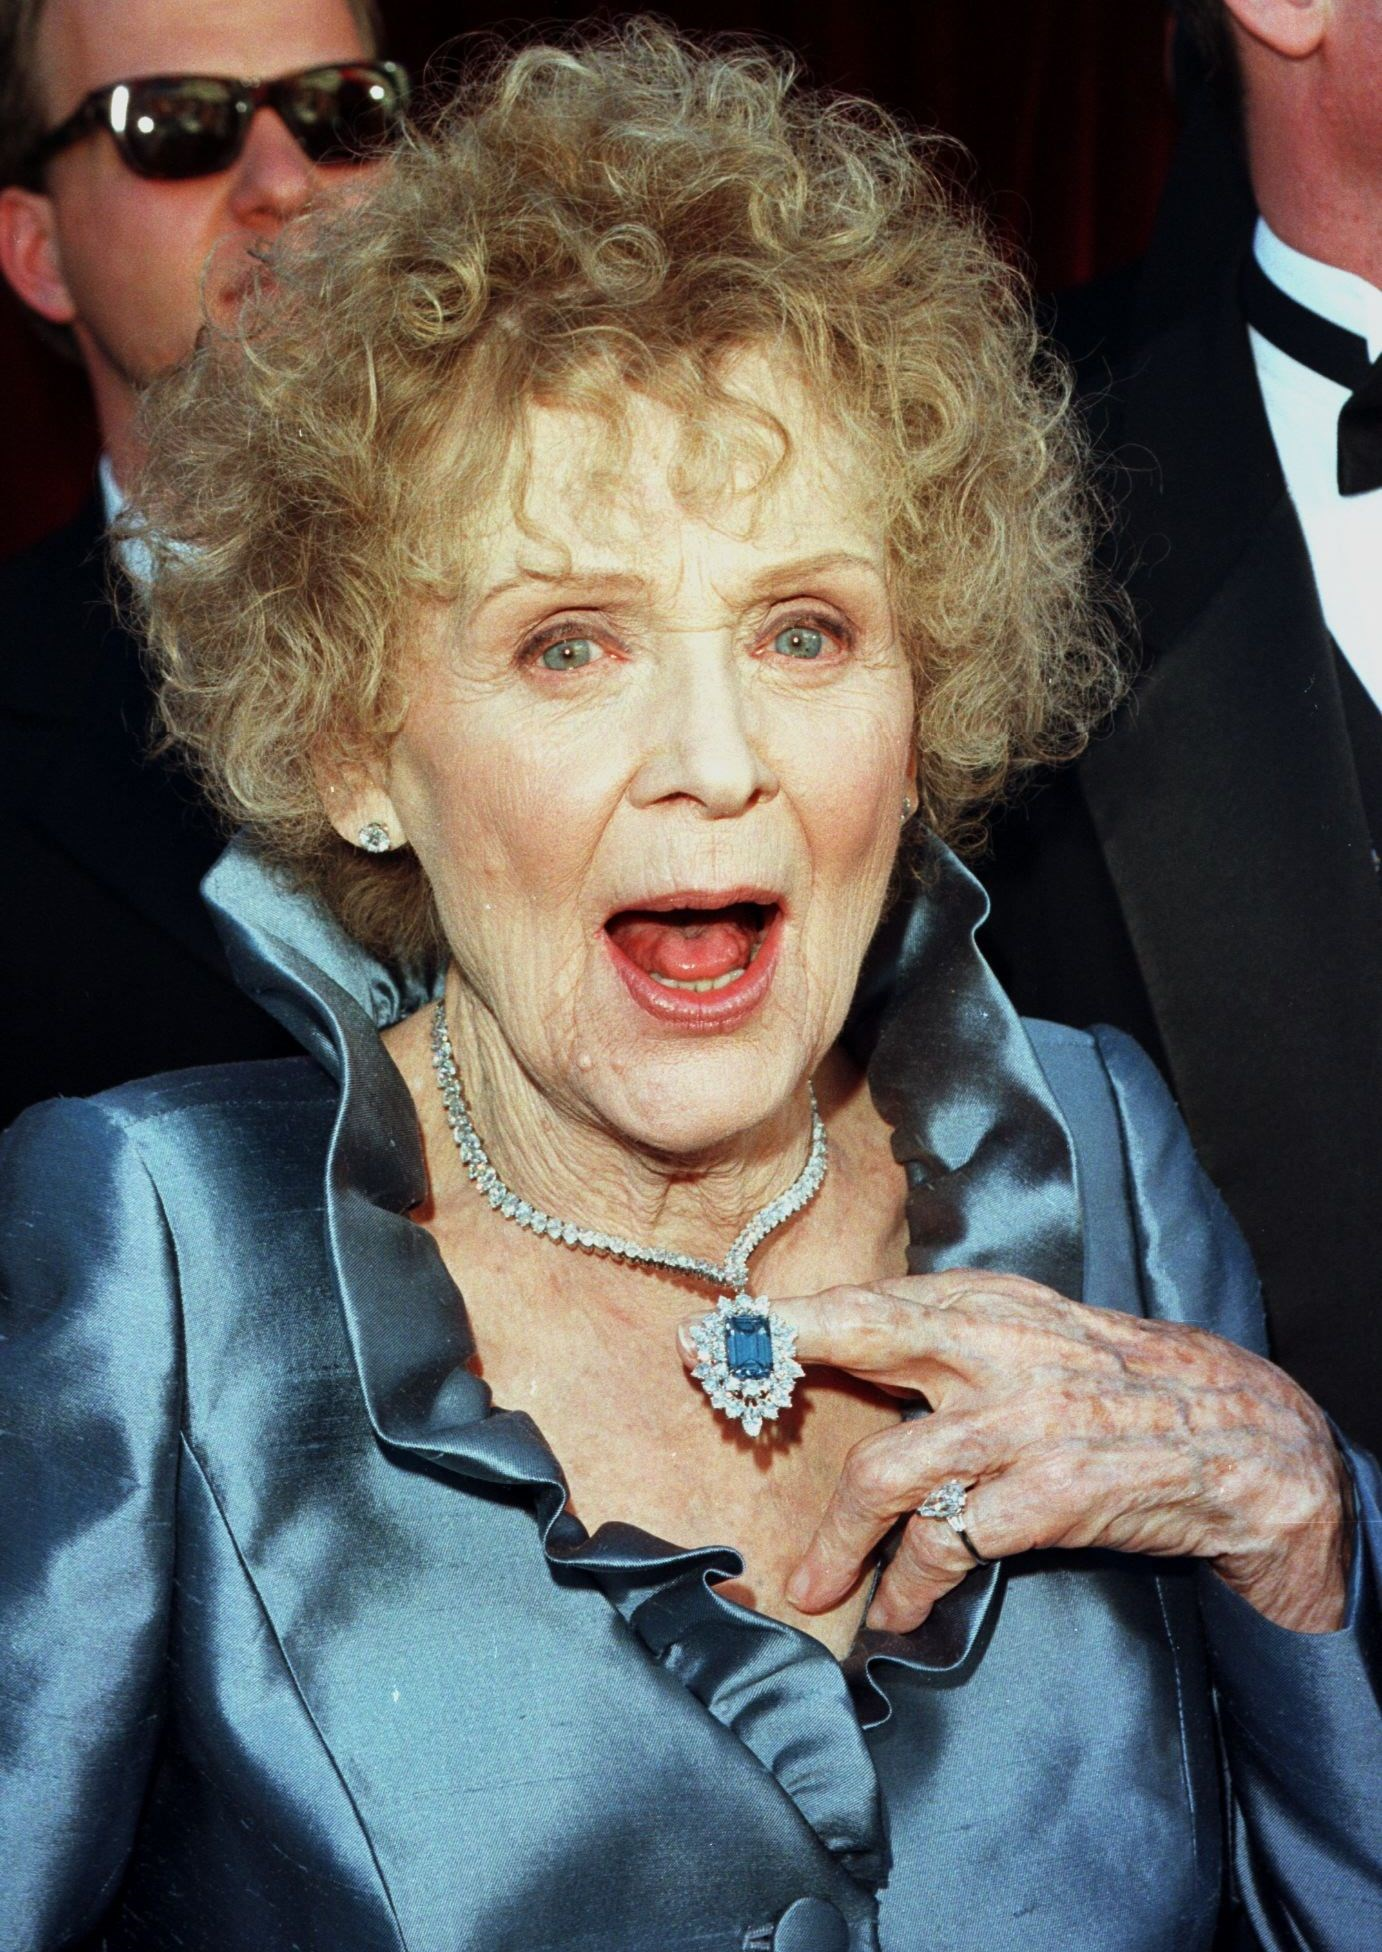 actress gloria stuart at 1998 oscars wearing harry winston blue diamond necklace